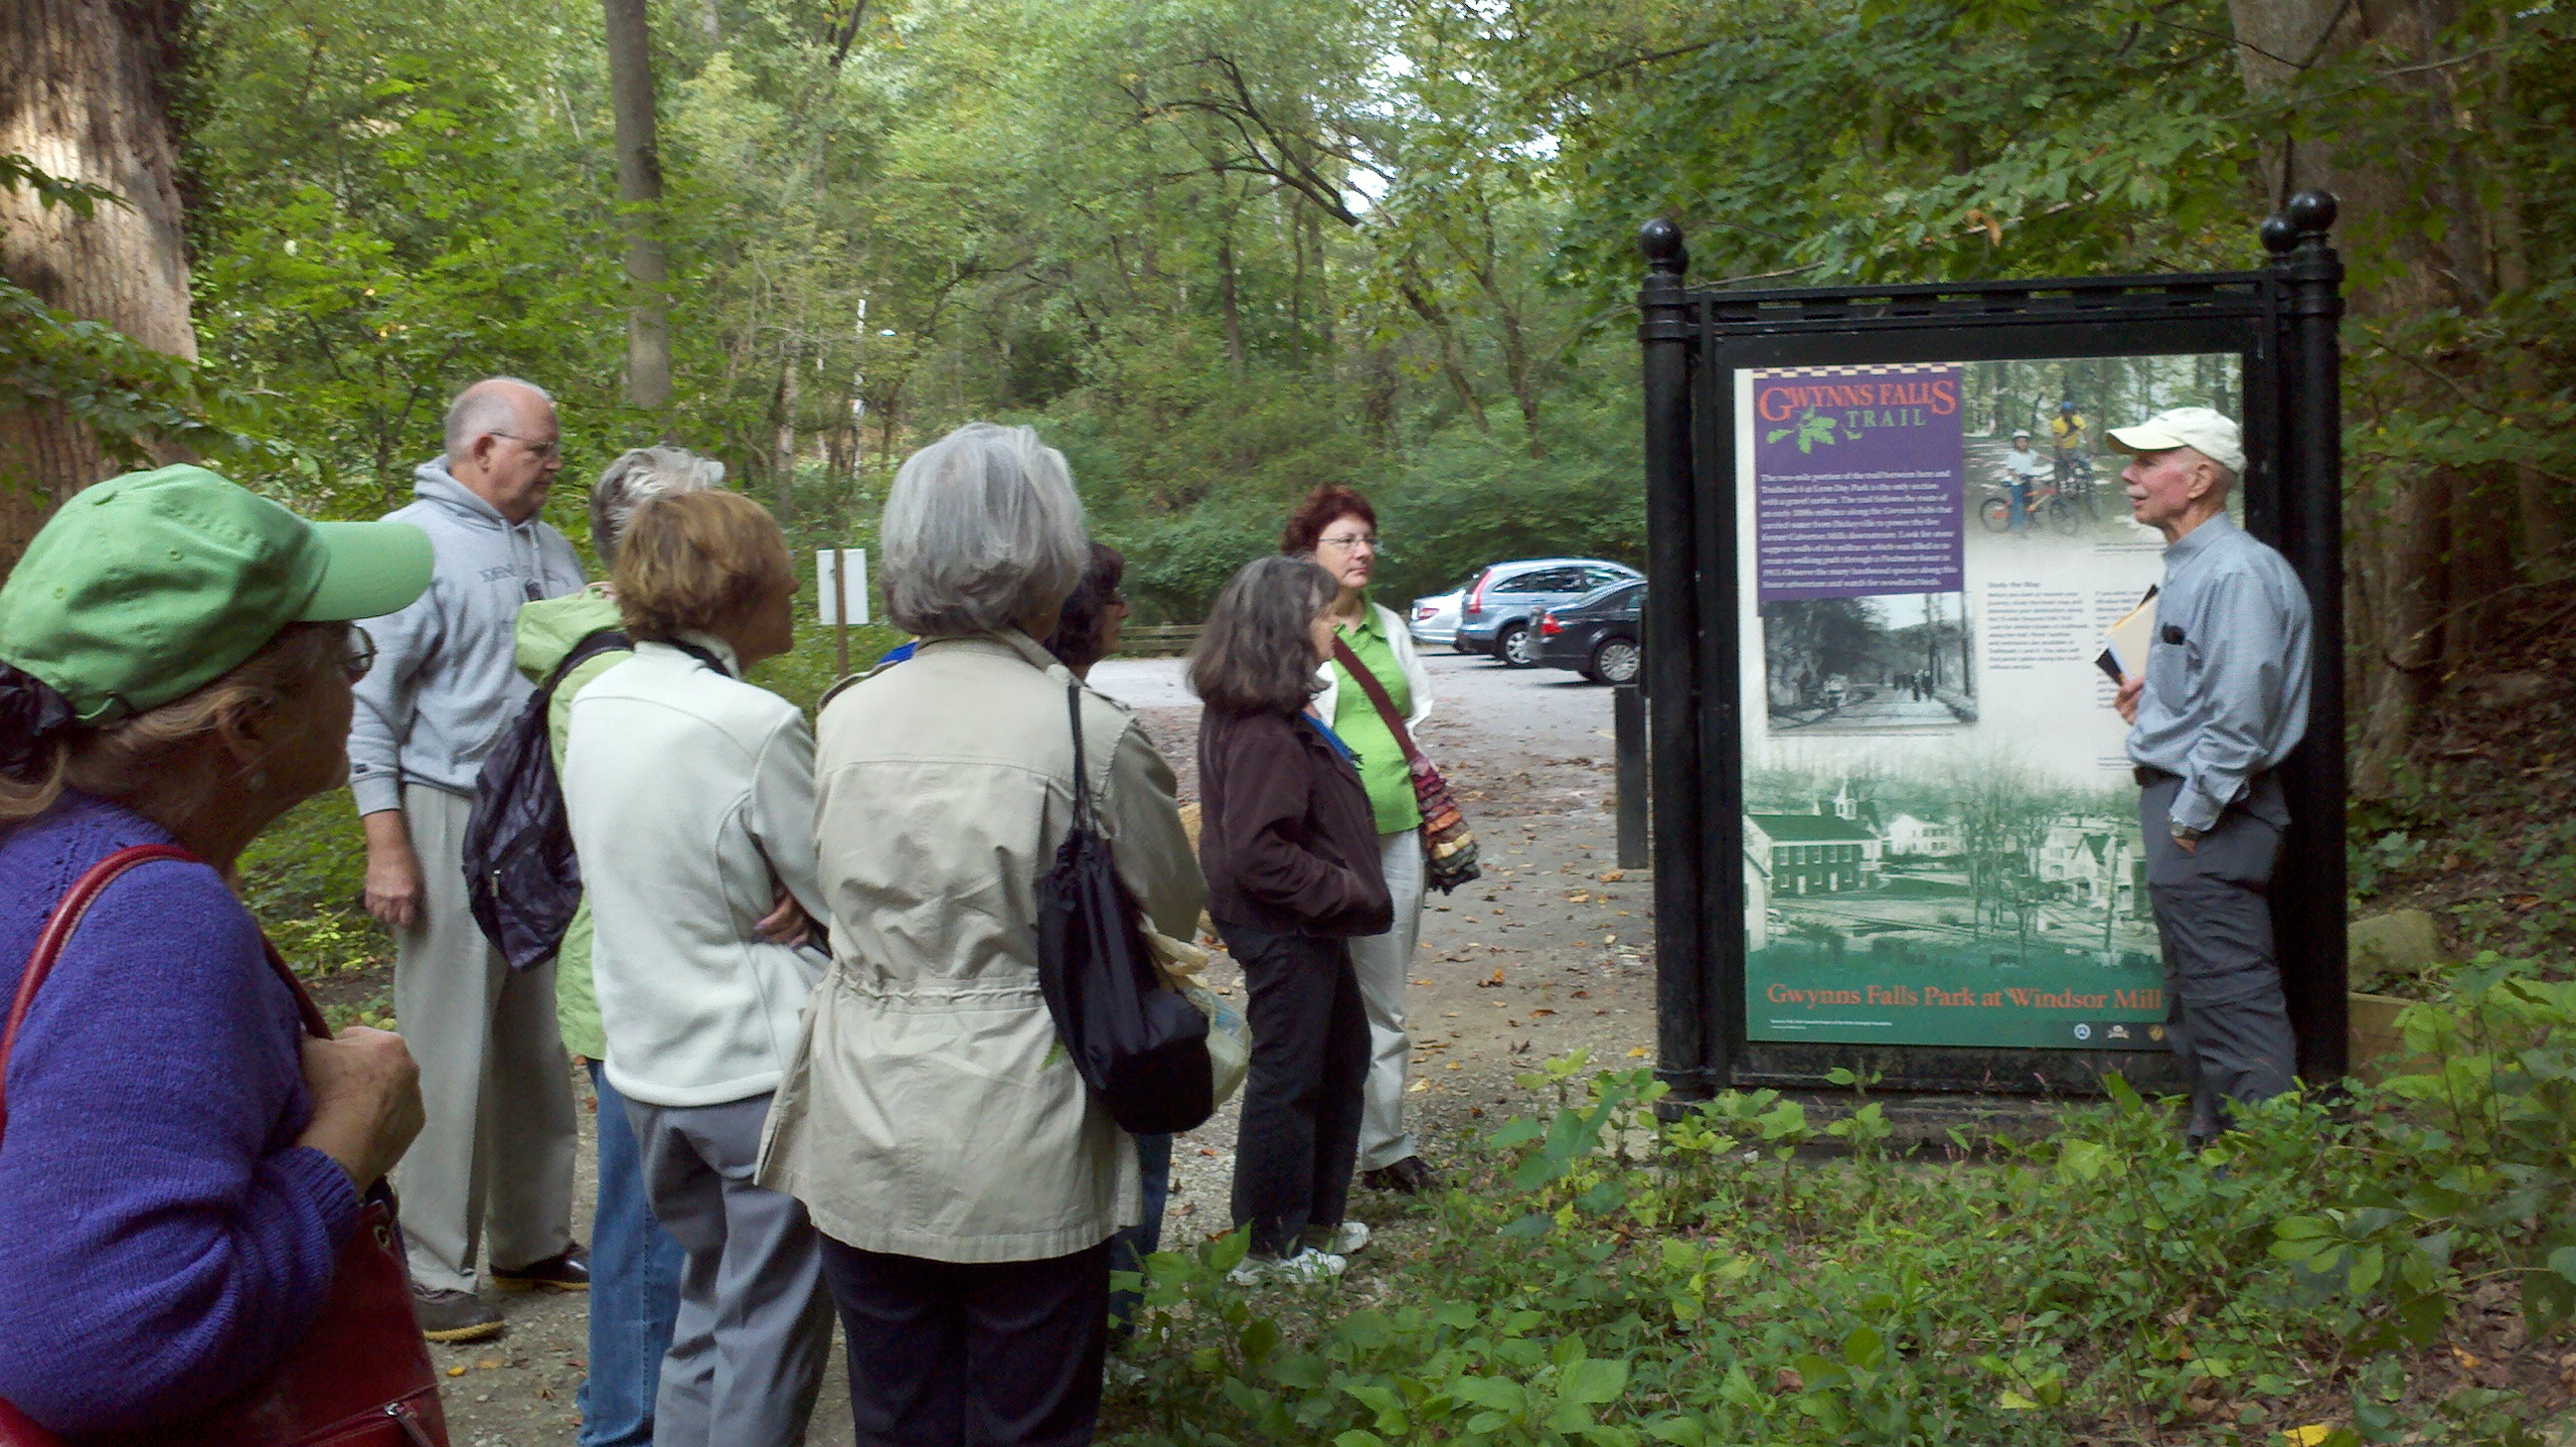 Ed Orser leading a tour of the Gwynns Falls Trail for students in the 2013 Odyssey course.